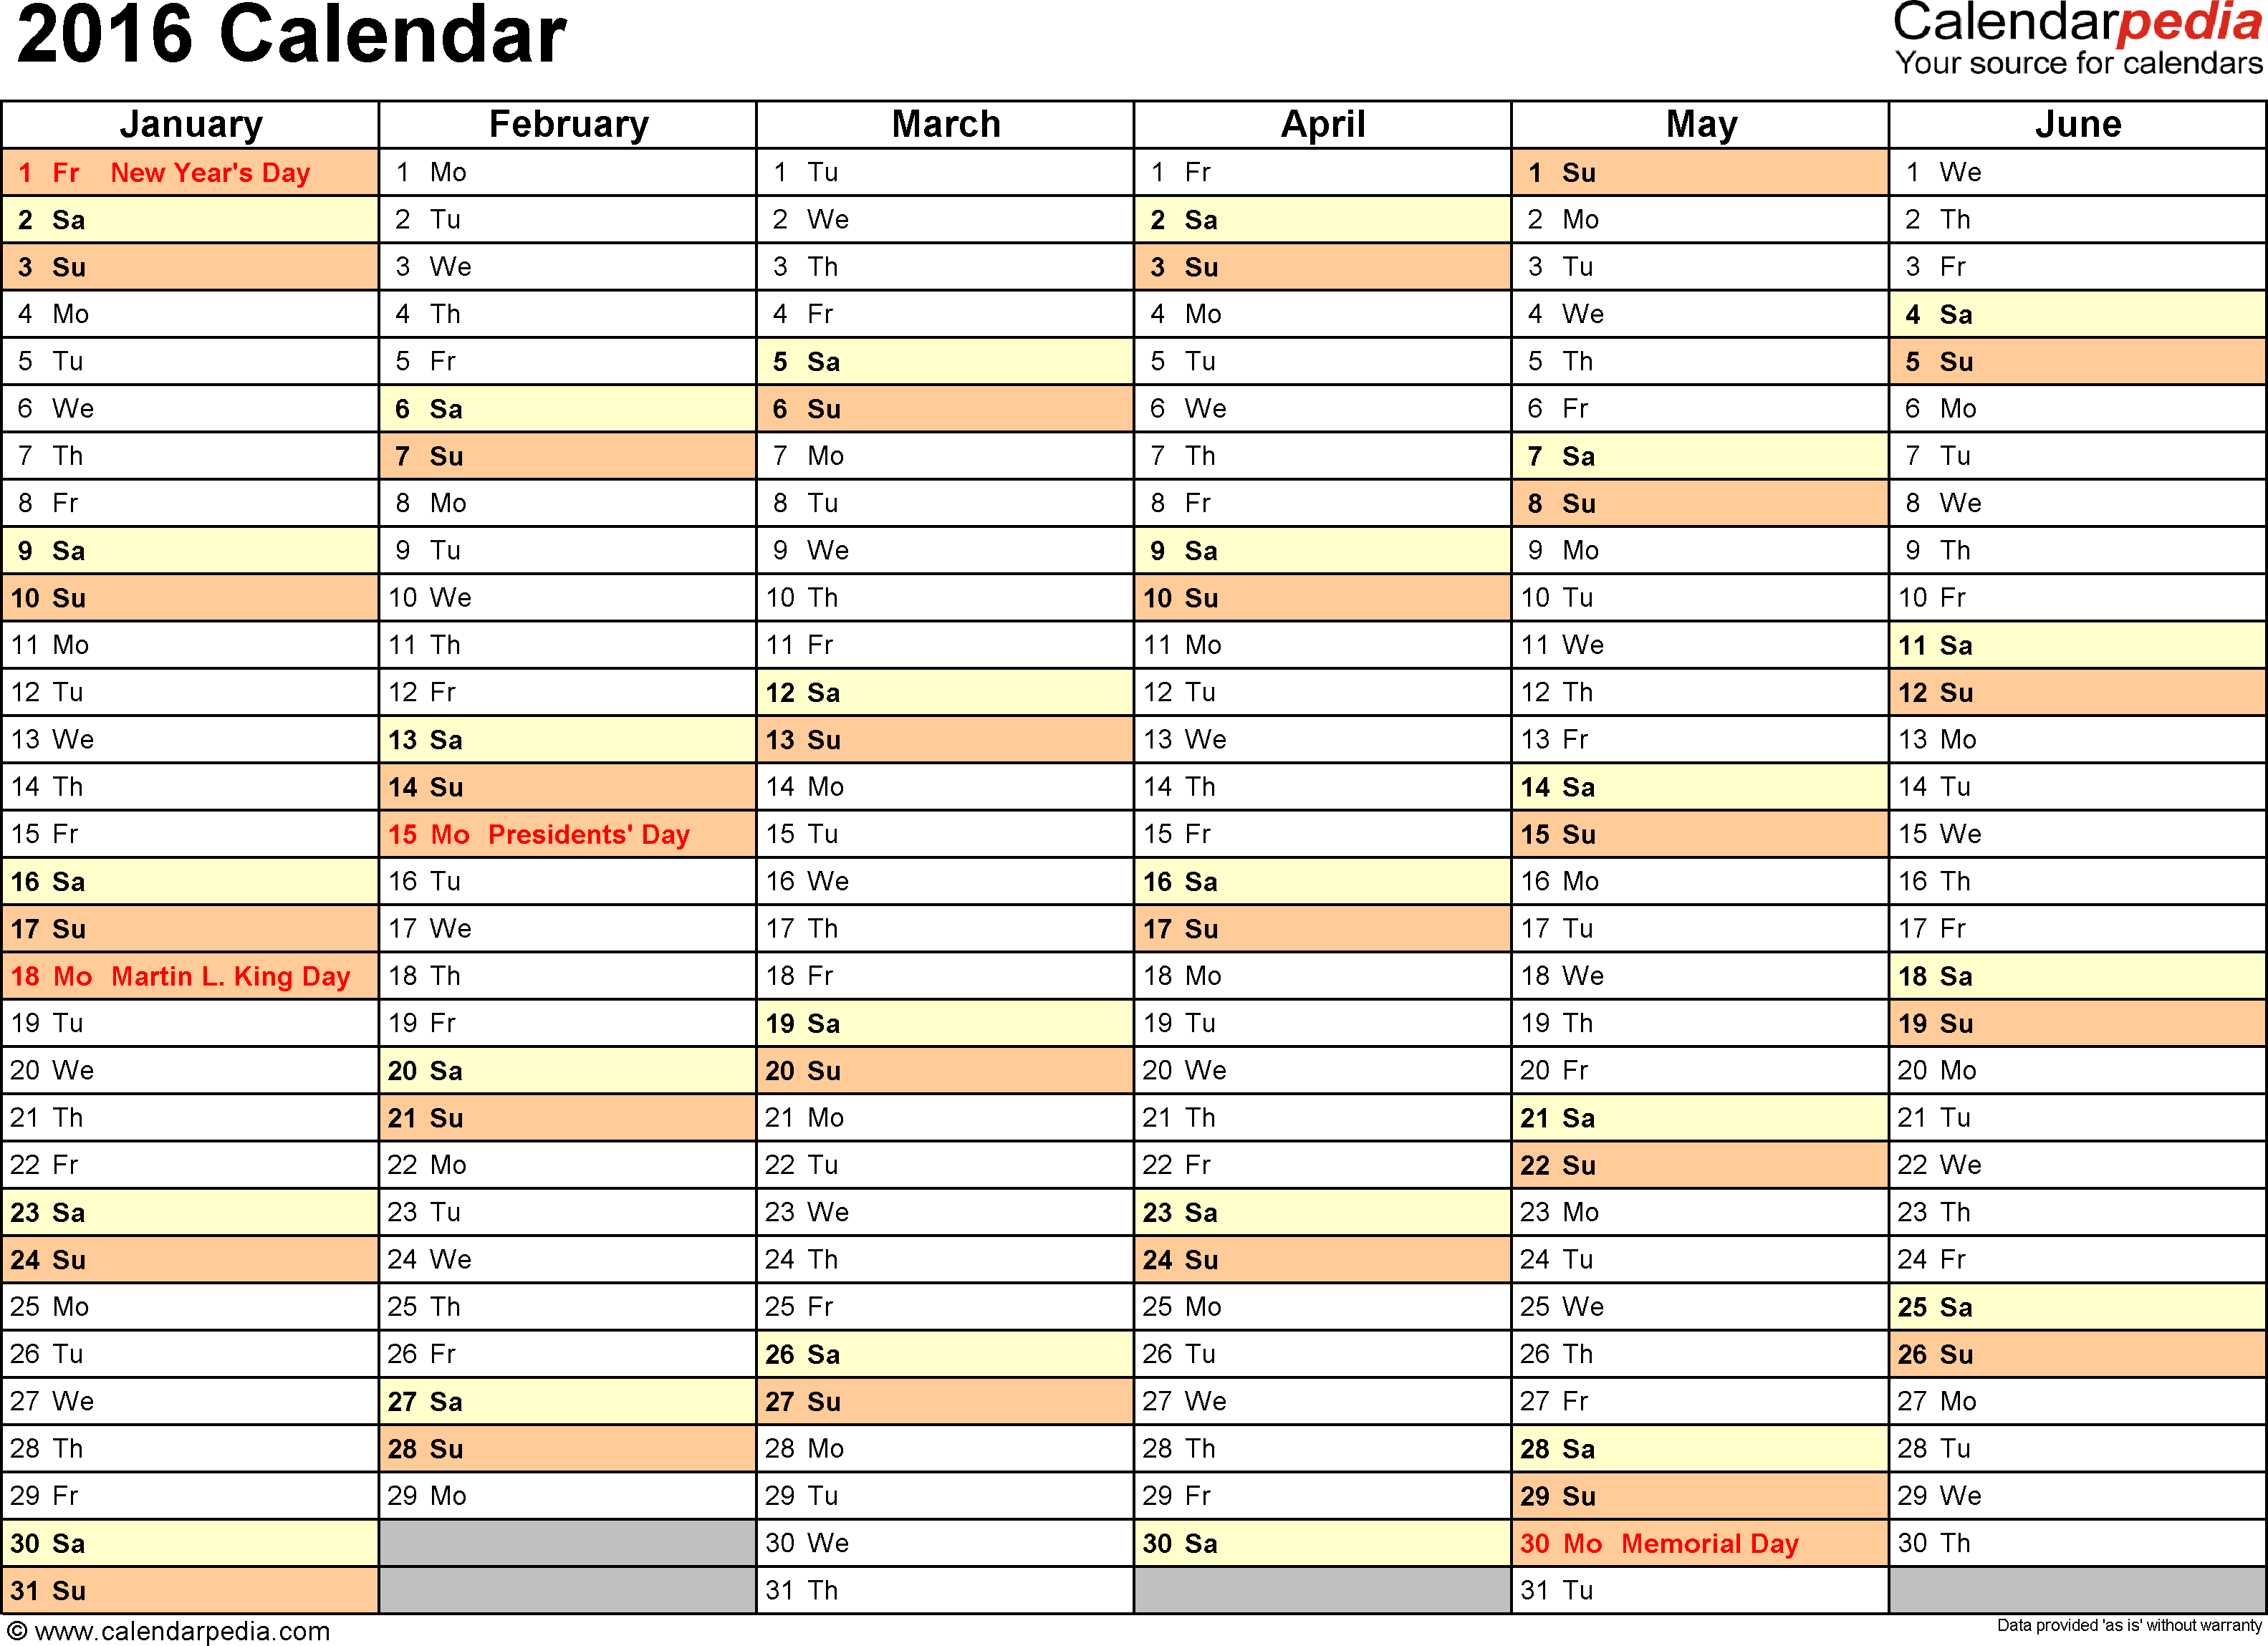 Ediblewildsus  Wonderful  Calendar  Download  Free Printable Excel Templates Xls With Handsome Template   Calendar For Excel Months Horizontally  Pages Landscape Orientation With Archaic Excel Not Equal To Symbol Also Subtracting Months In Excel In Addition Excel Vba Userform Examples And Excel Column Labels As Well As Excel To Mailing Labels Additionally Excel  Tools Menu From Calendarpediacom With Ediblewildsus  Handsome  Calendar  Download  Free Printable Excel Templates Xls With Archaic Template   Calendar For Excel Months Horizontally  Pages Landscape Orientation And Wonderful Excel Not Equal To Symbol Also Subtracting Months In Excel In Addition Excel Vba Userform Examples From Calendarpediacom